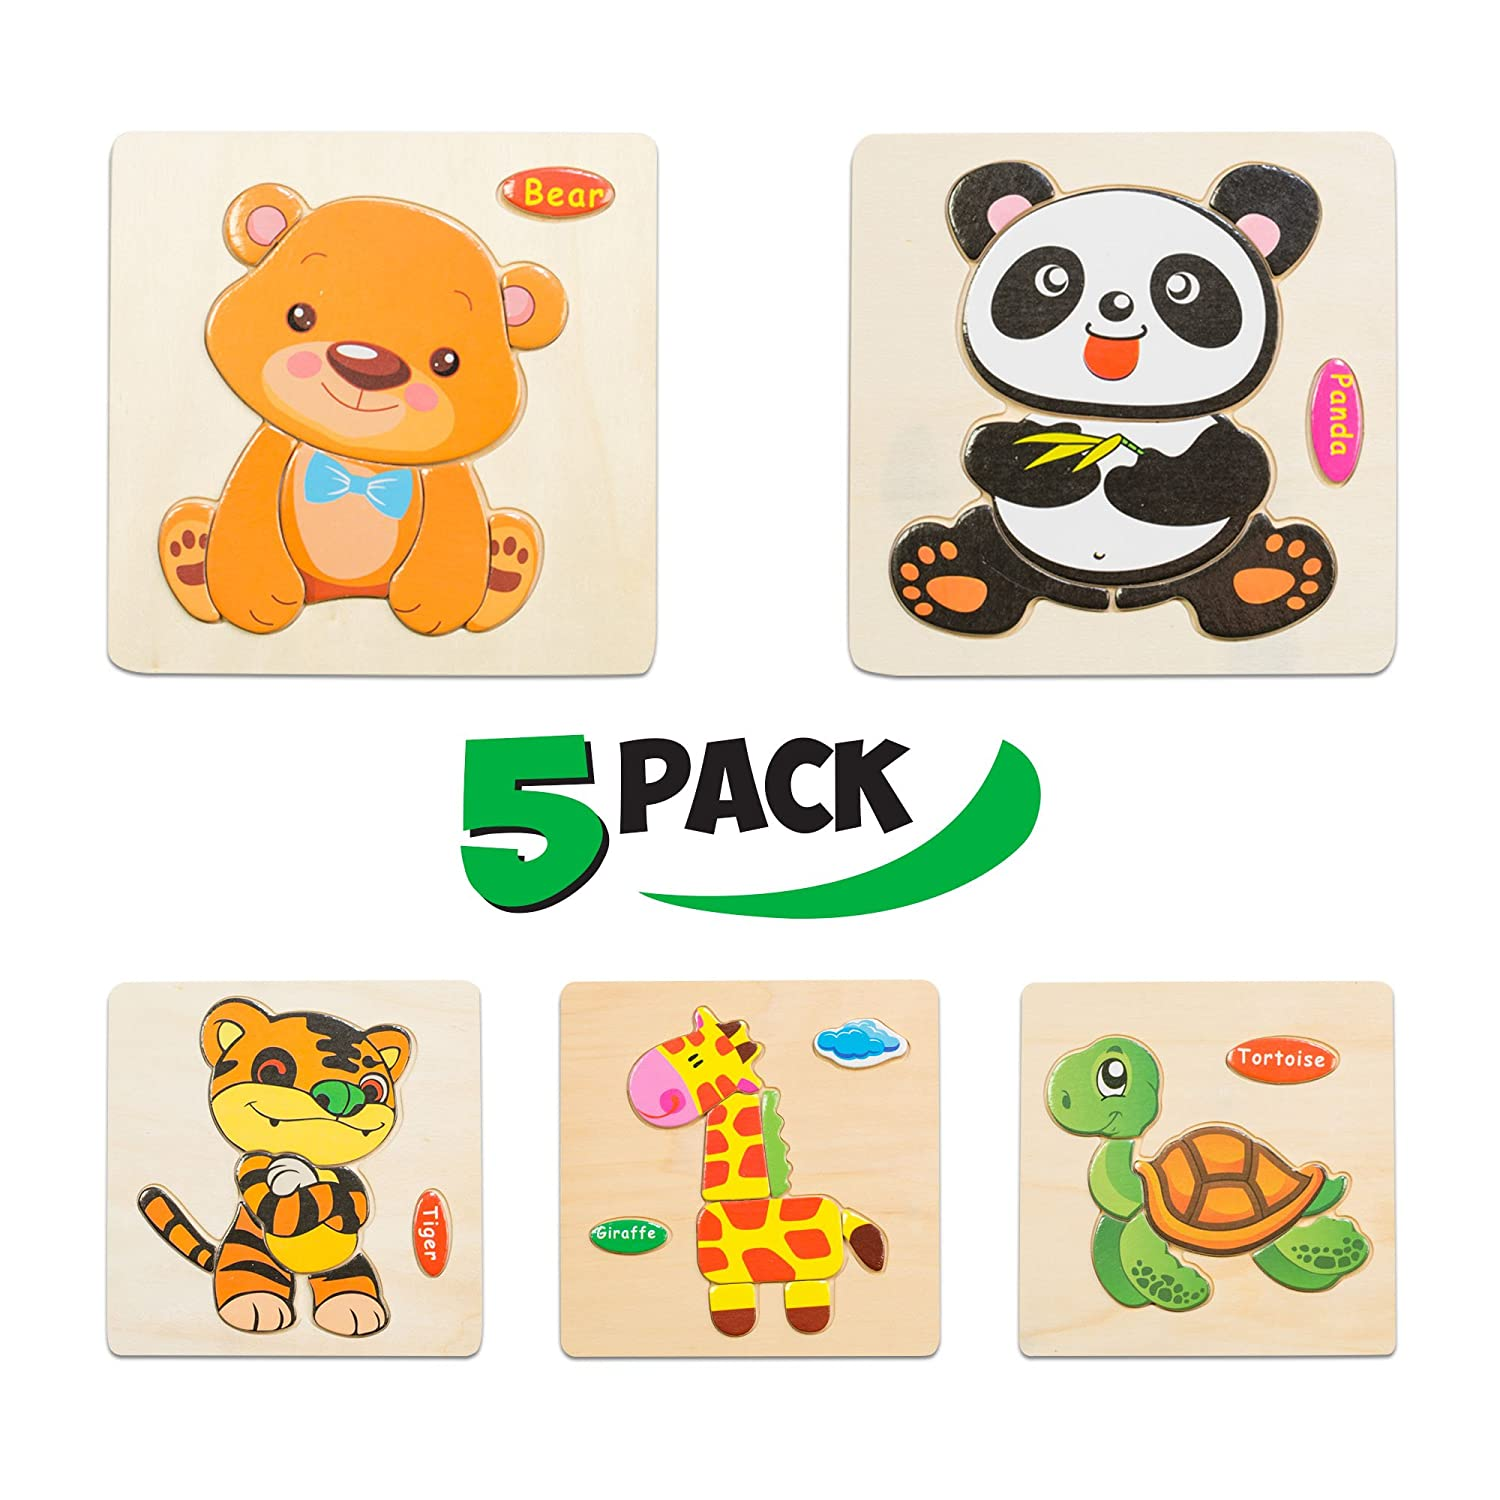 Wooden Puzzles for Toddlers - New set of 5 Kids Puzzles - Puzzles for Toddlers age 3+ Toddlers Puzzles for Boys and Girls - In the ZOO set - Tiger - Panda - Bear - Giraffe - Tortoise - 2018 NEW Ltd.